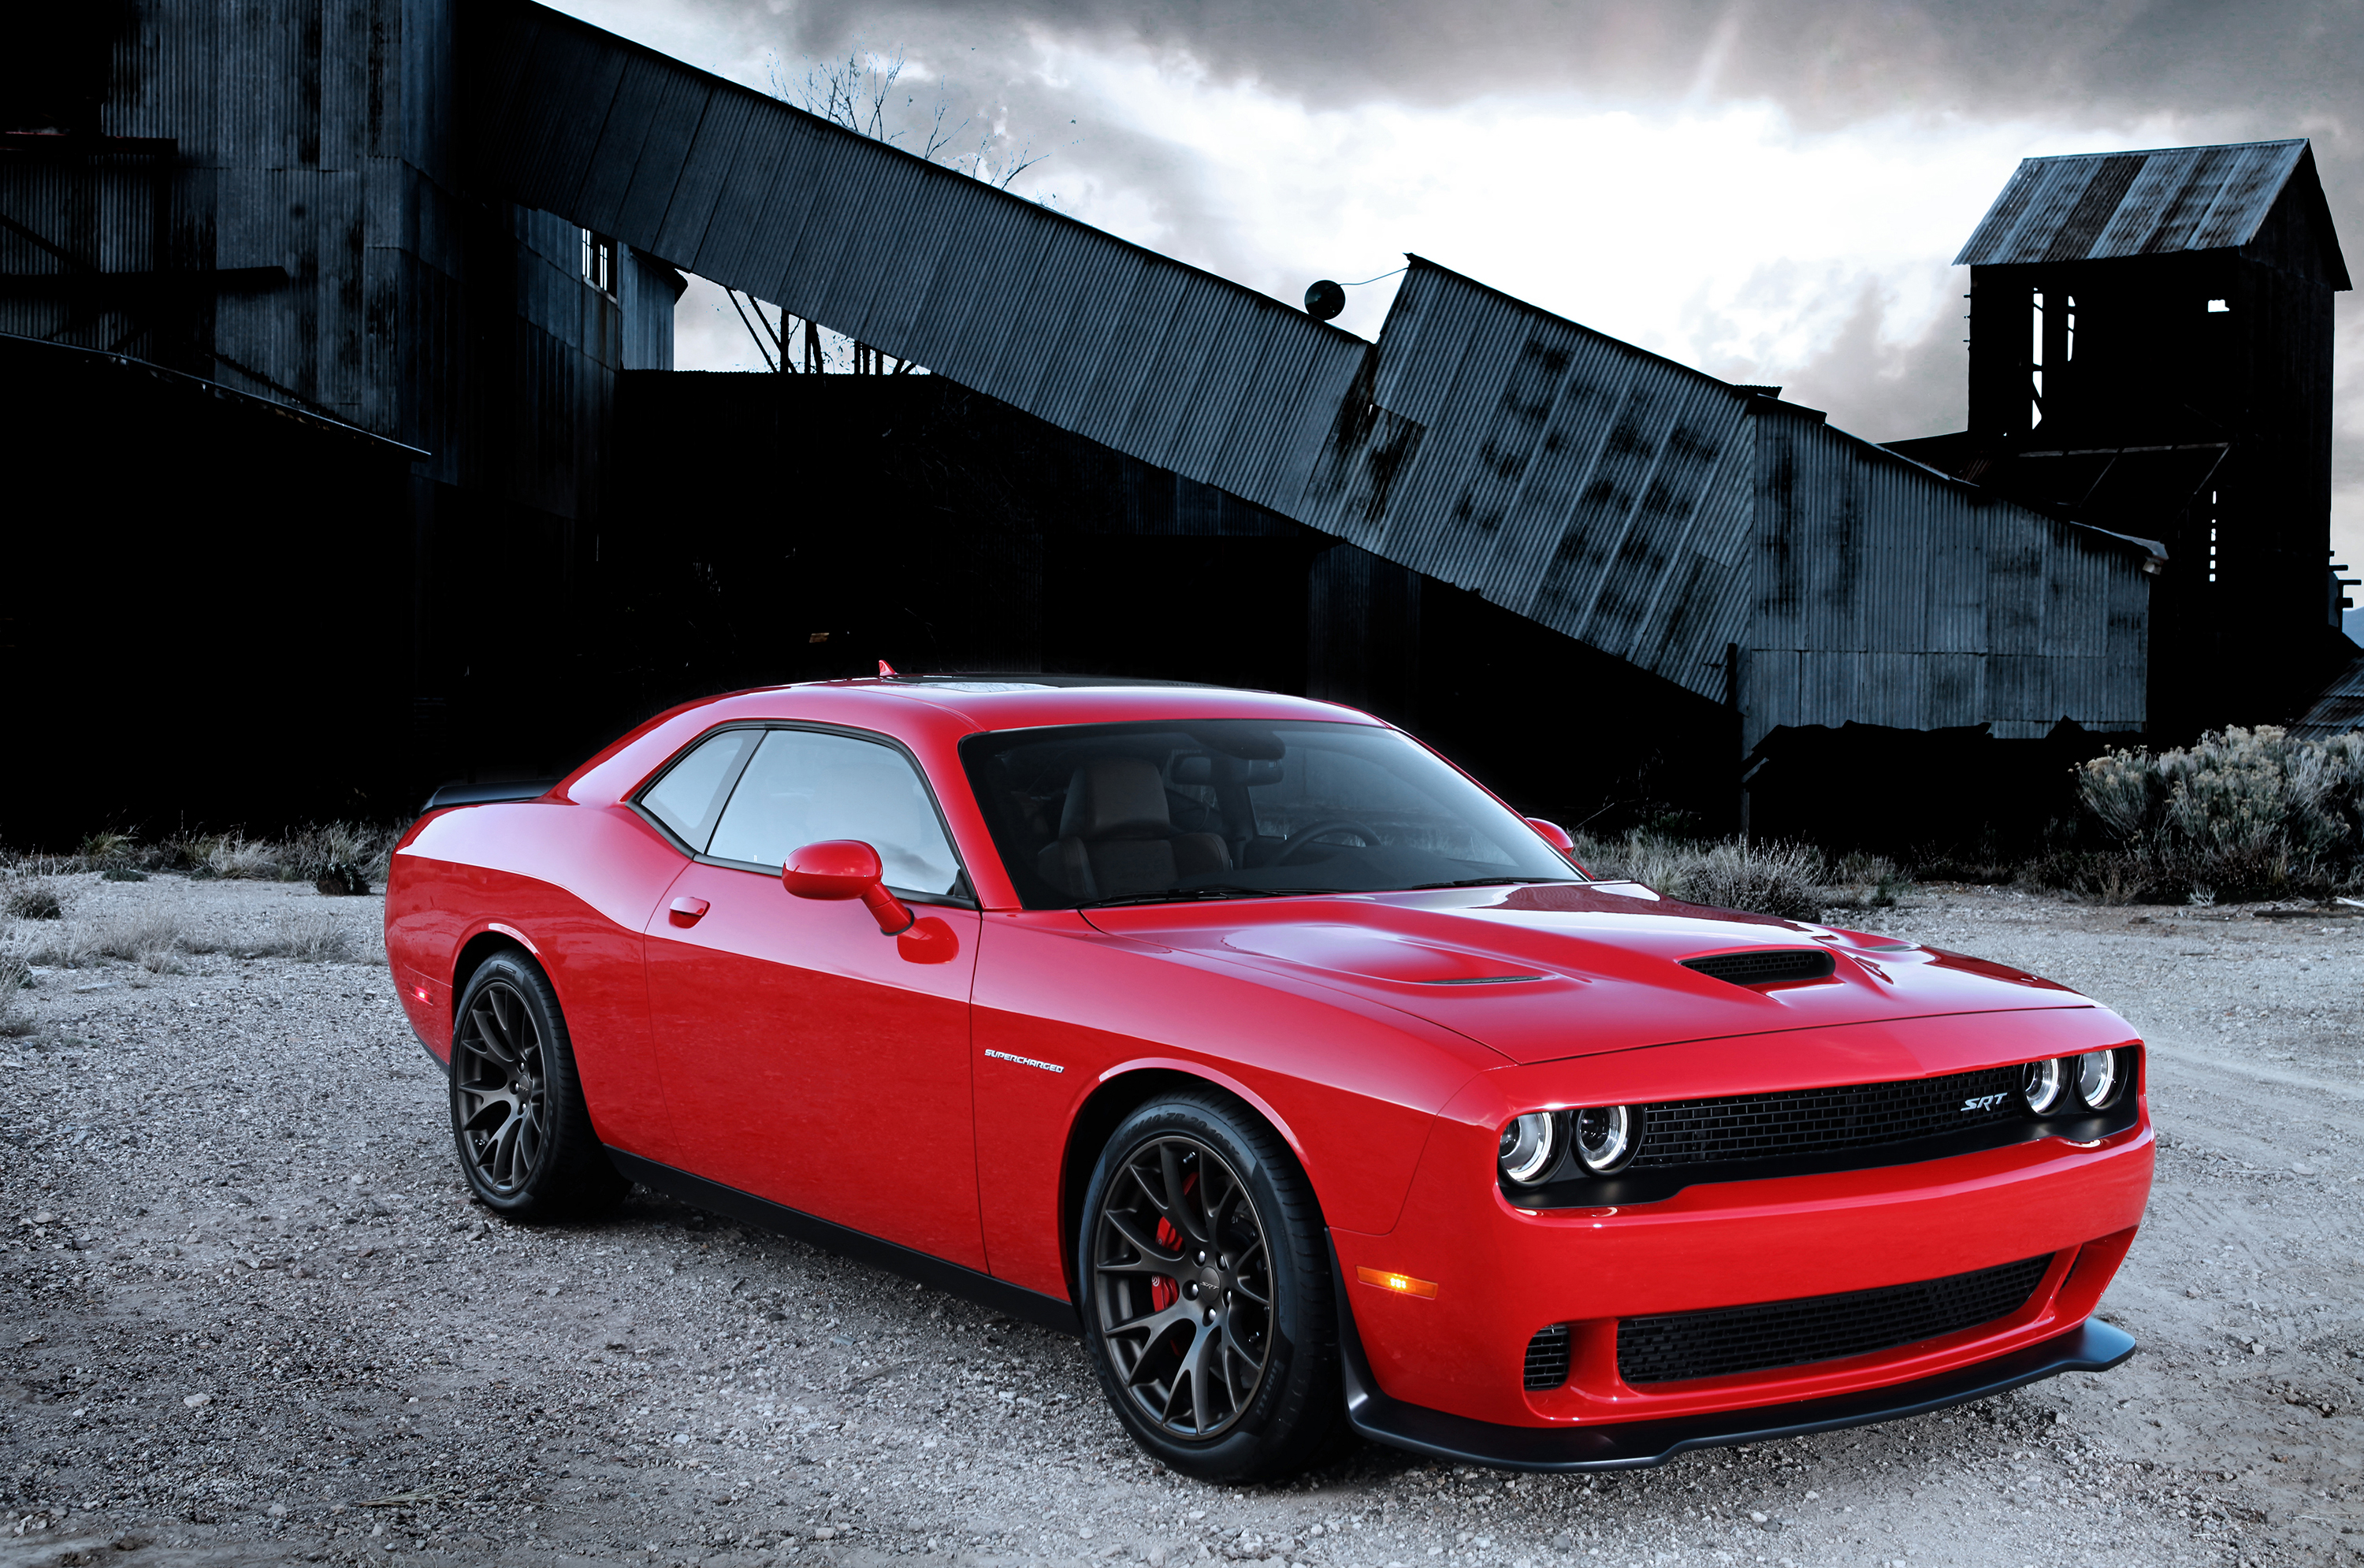 Hellcat Powered Challenger Srt Gets Big Boost To Fight Mustang Camaro